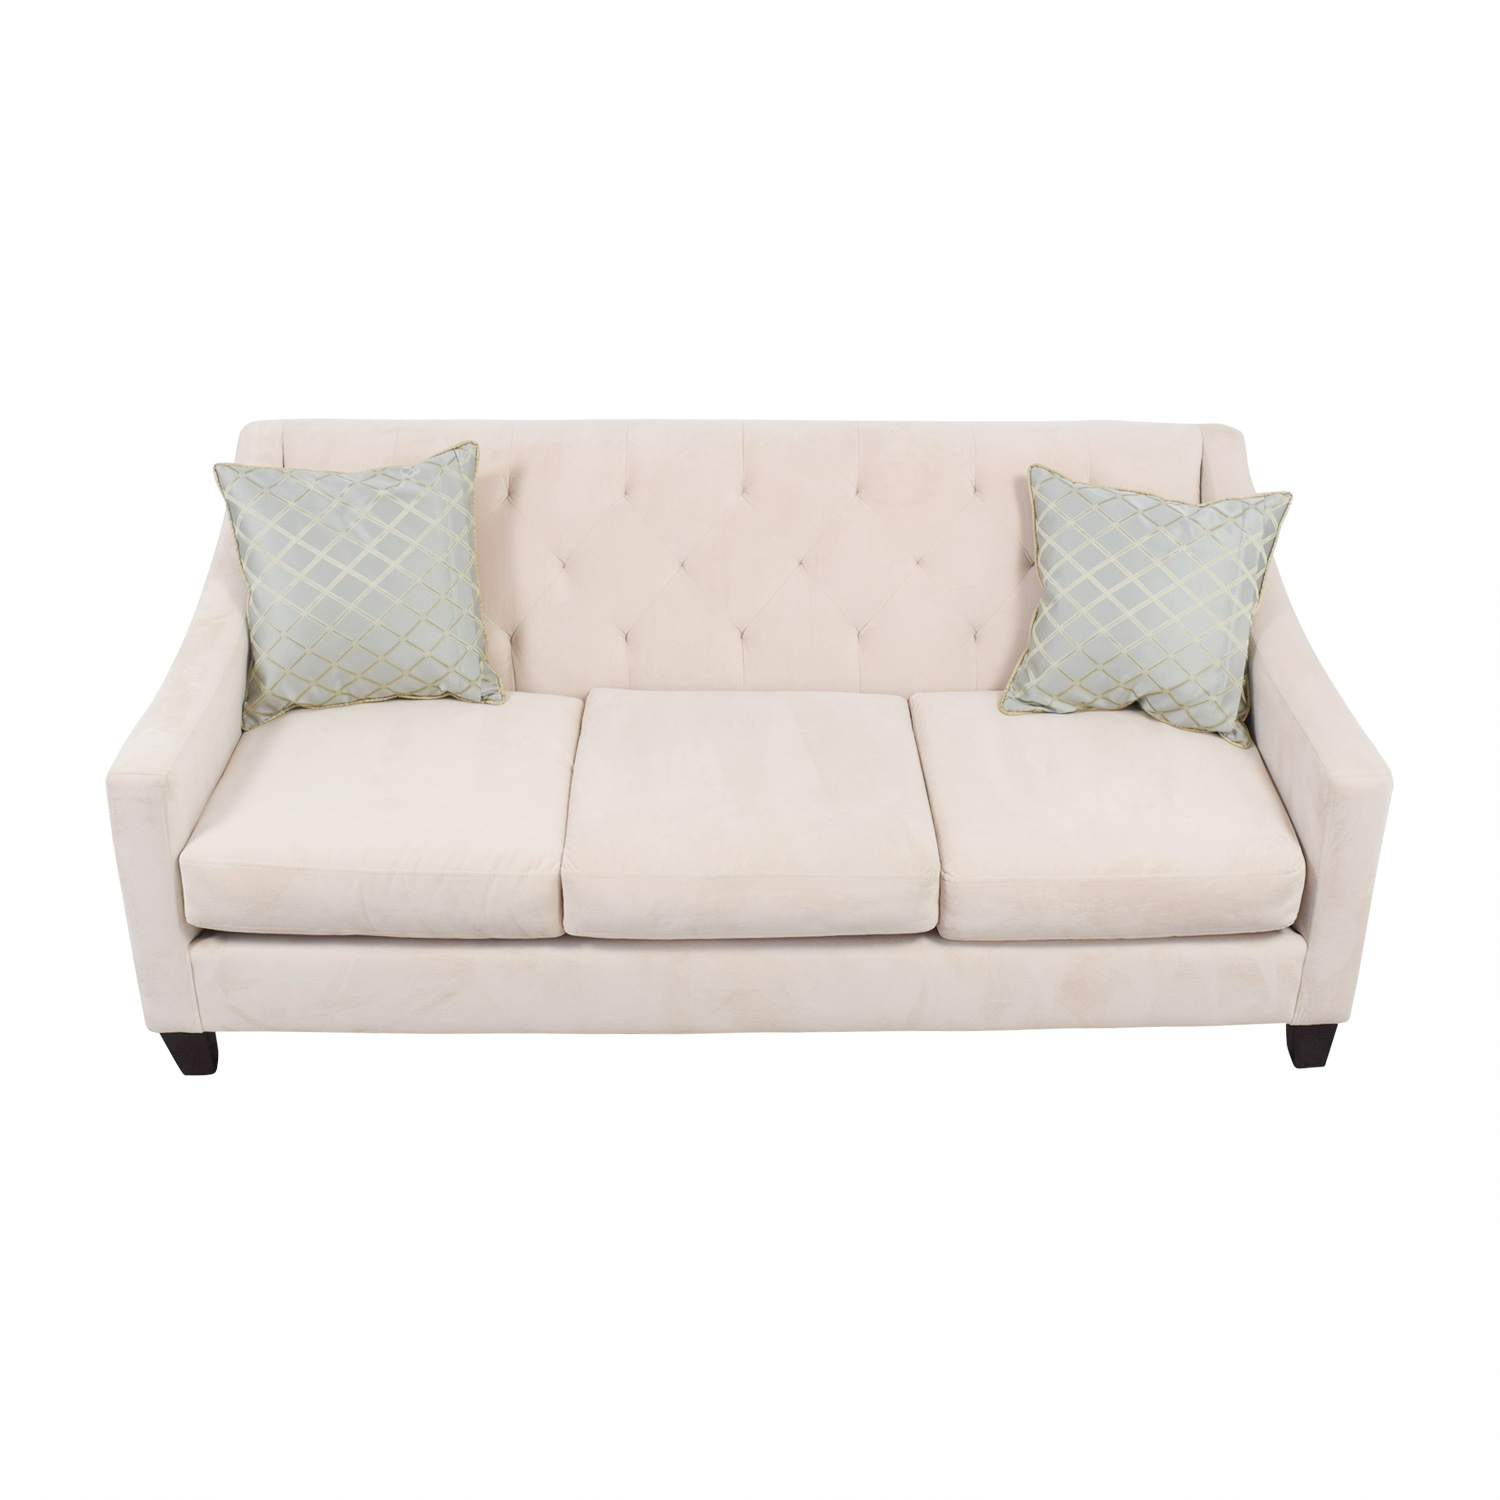 Max Home Max Home Beige Semi-Tufted Three-Cushion Couch dimensions